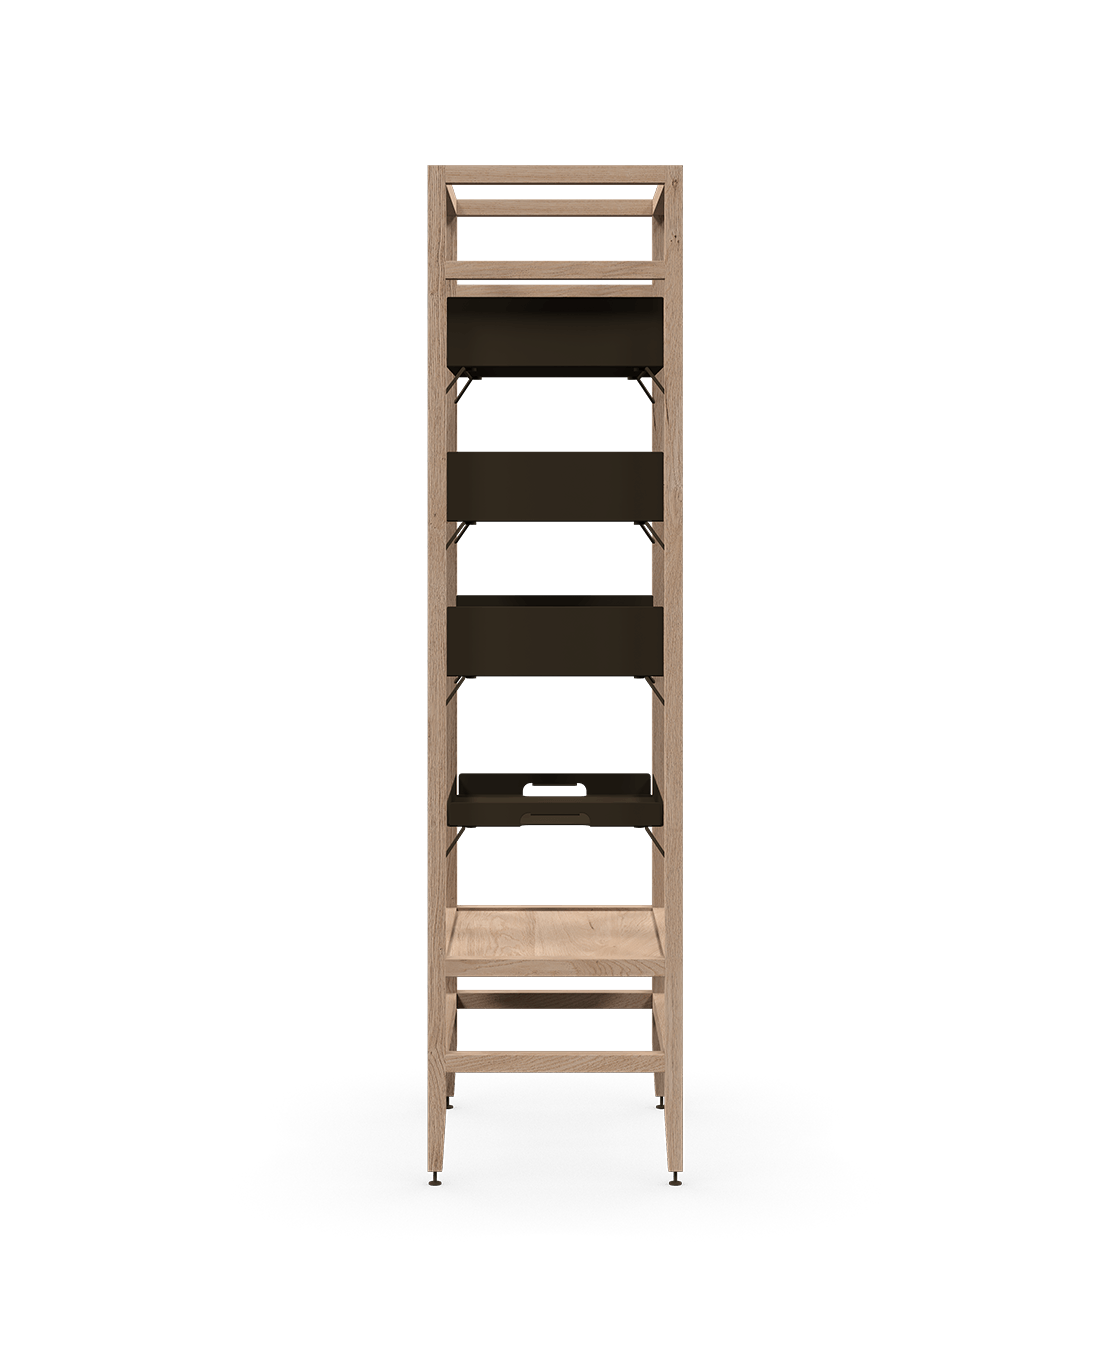 coquo volitare white oak solid wood modular 3 shelves 1 removable tray storage tall bookcase shelving unit 24 inch C2-S-2418-0001-NA